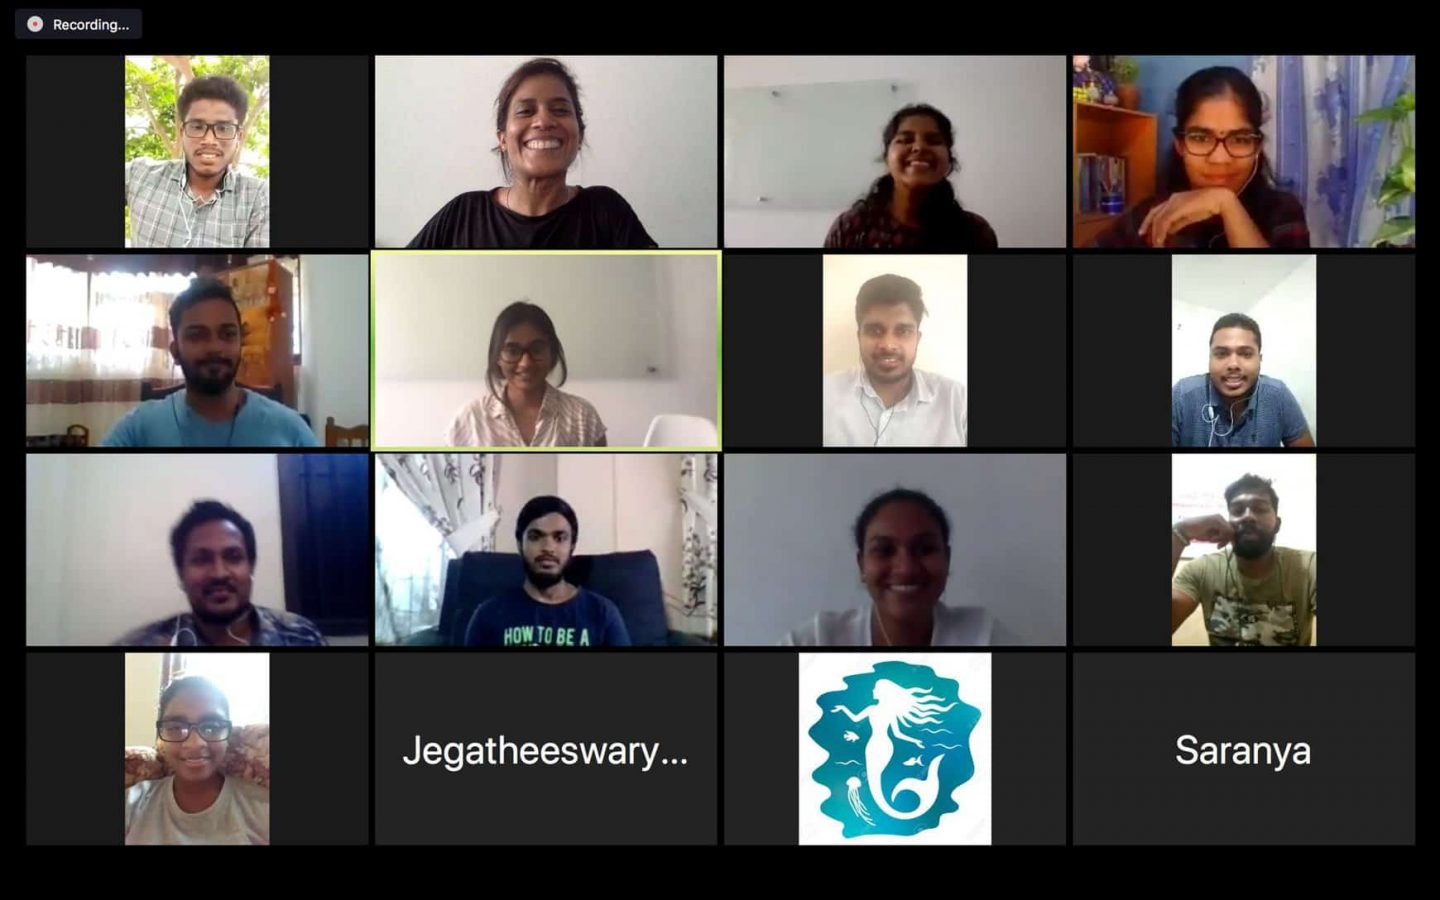 A virtual training session held on Zoom.